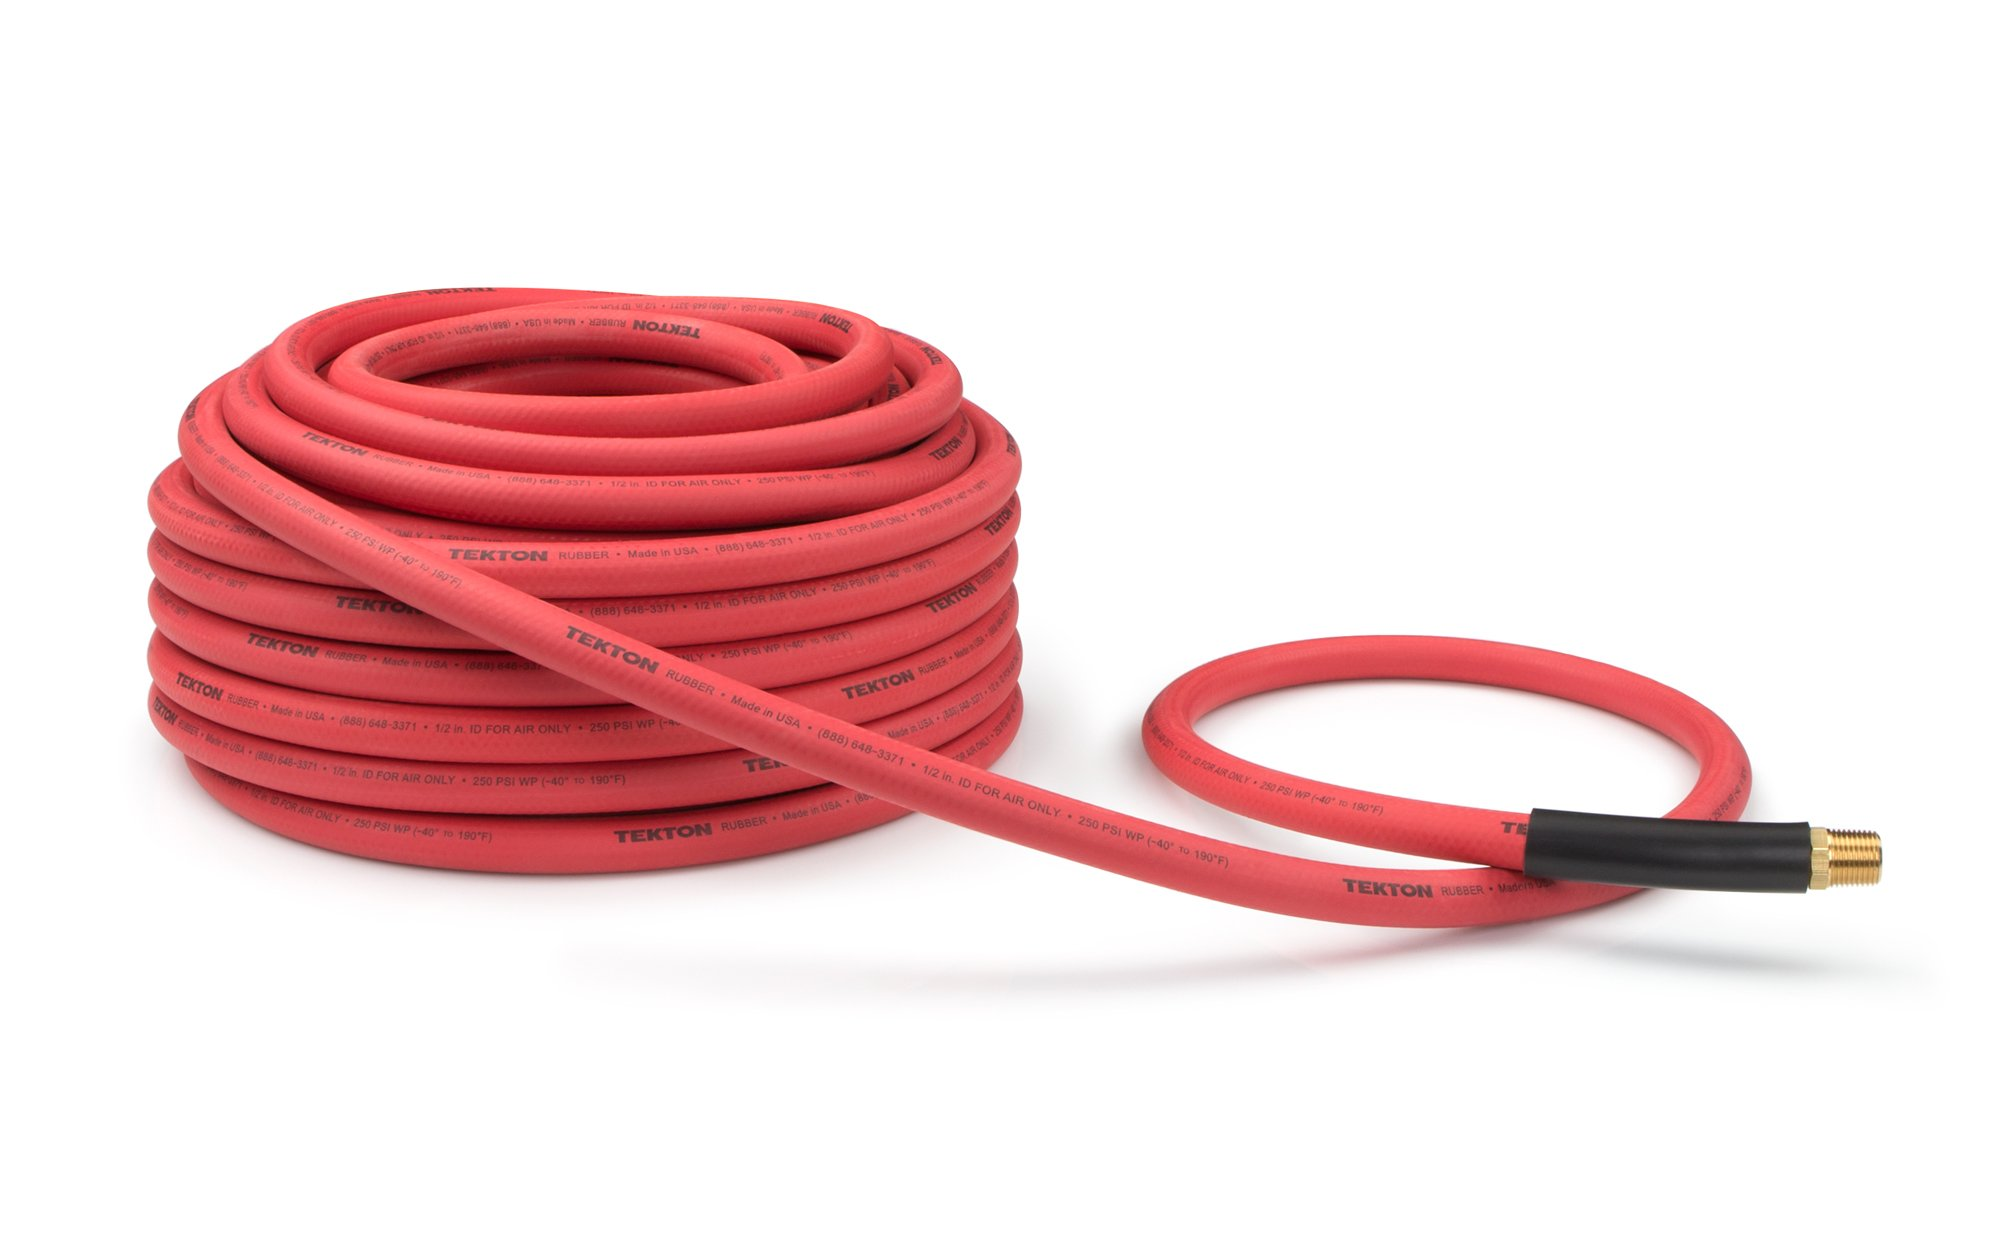 TEKTON 46368 1/2-Inch I.D. by 100-Foot 250 PSI Rubber Air Hose with 1/2-Inch MPT Ends and Bend Restrictors